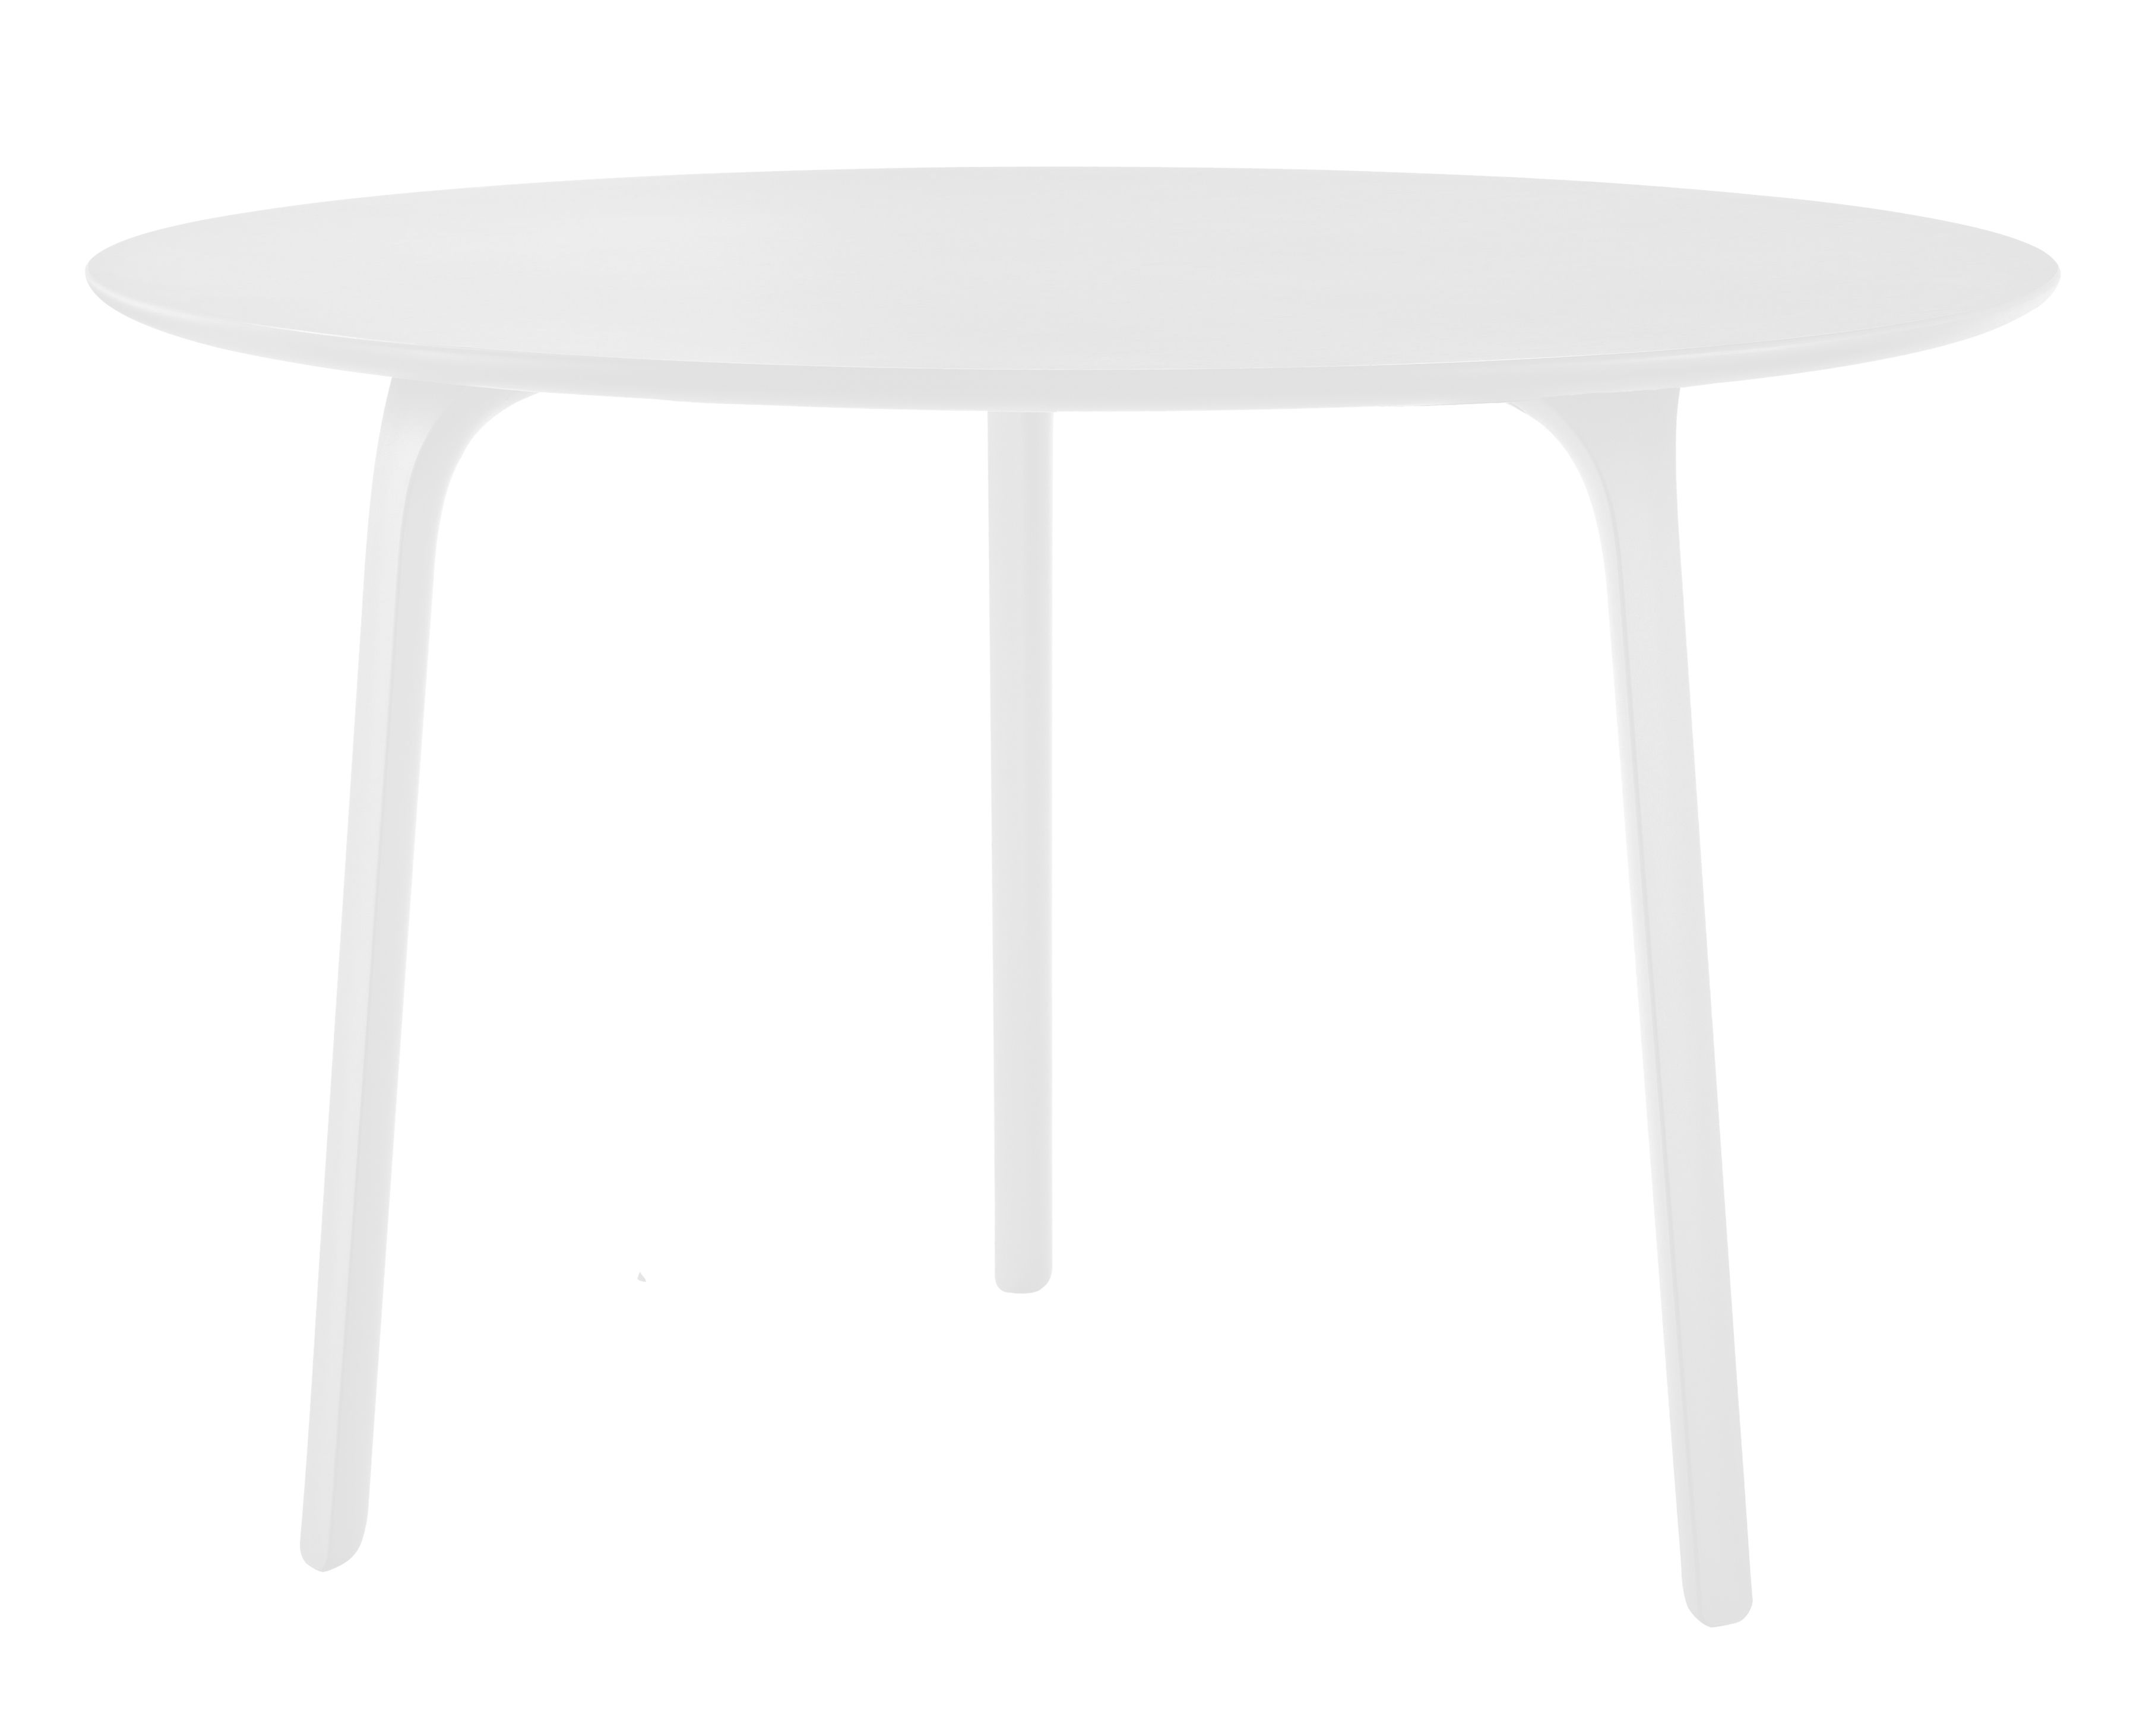 Furniture - Dining Tables - First Table - Round Ø 80 - Indoor use by Magis - White/ white legs - Polyamide, Varnished MDF